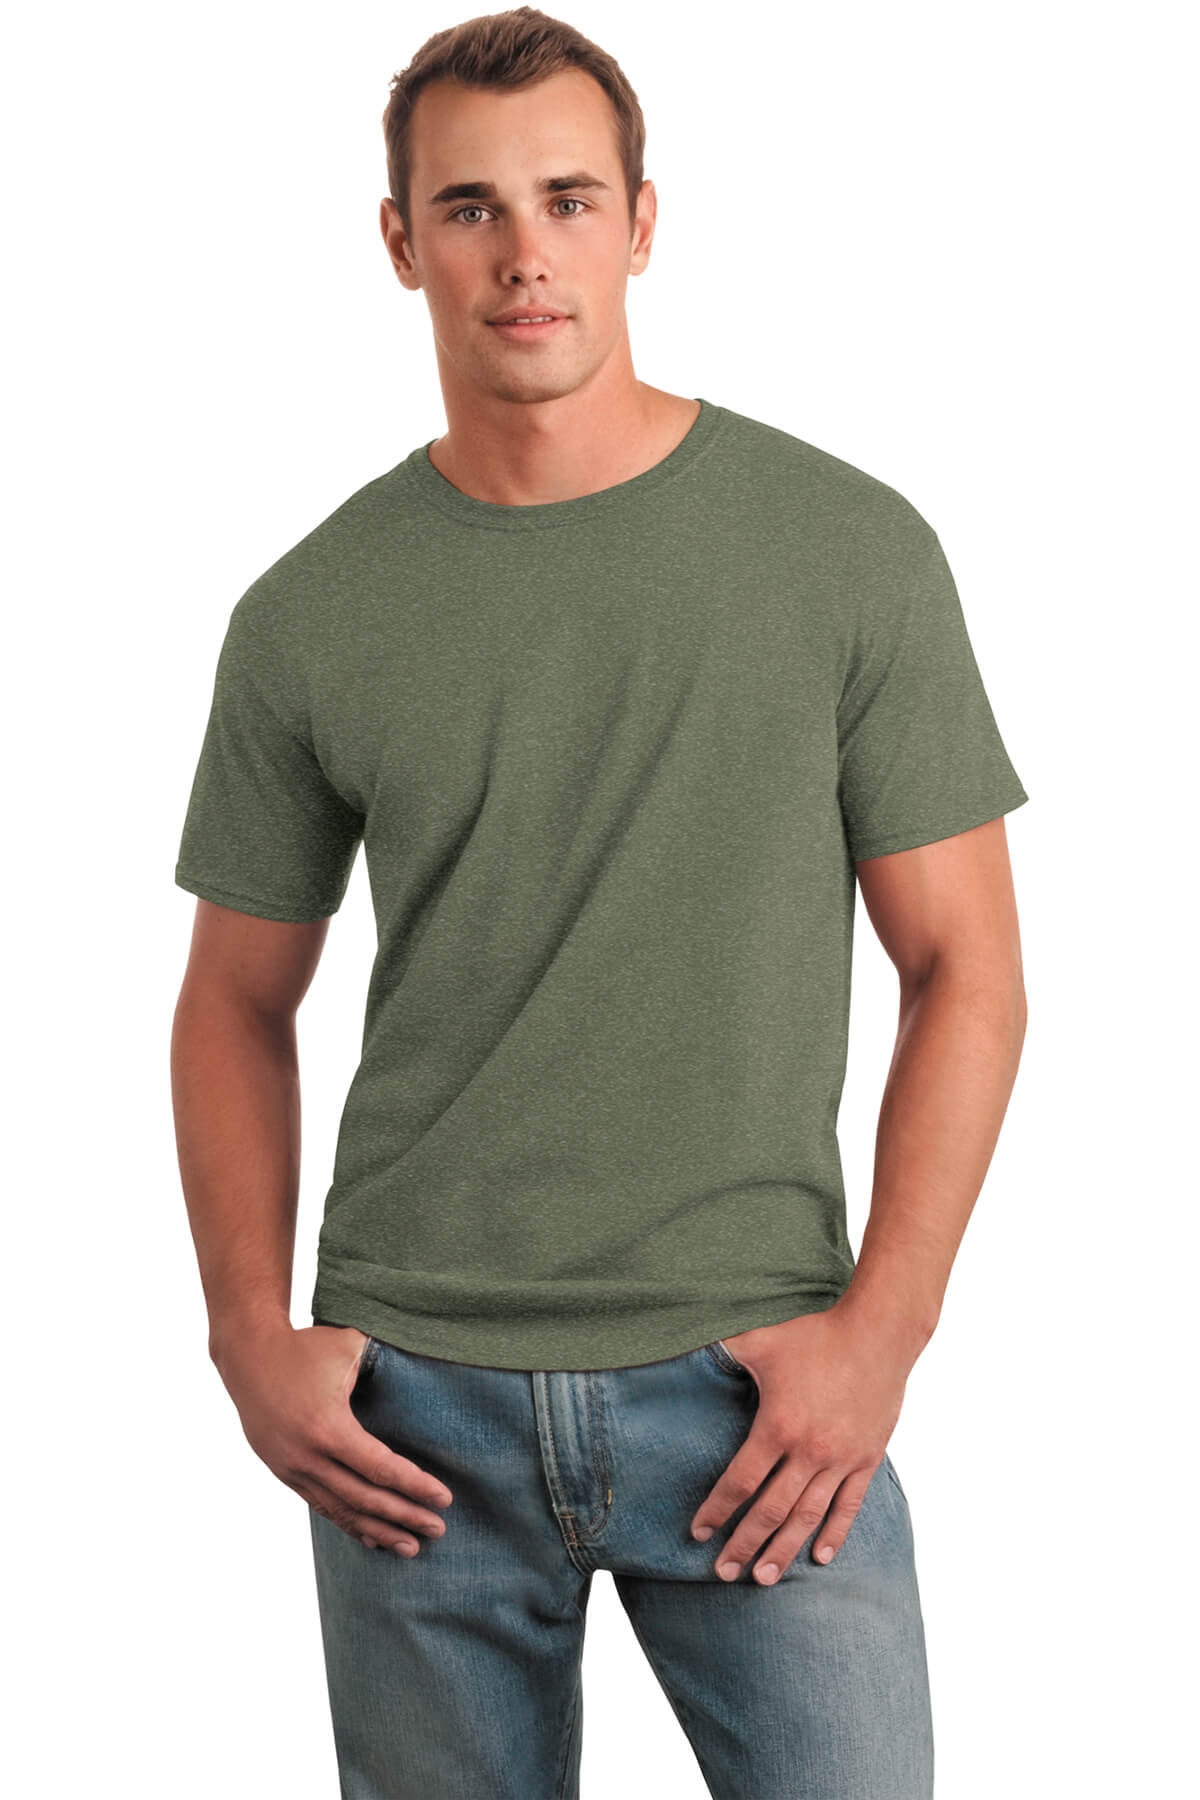 Military Green T-Shirt Model Front